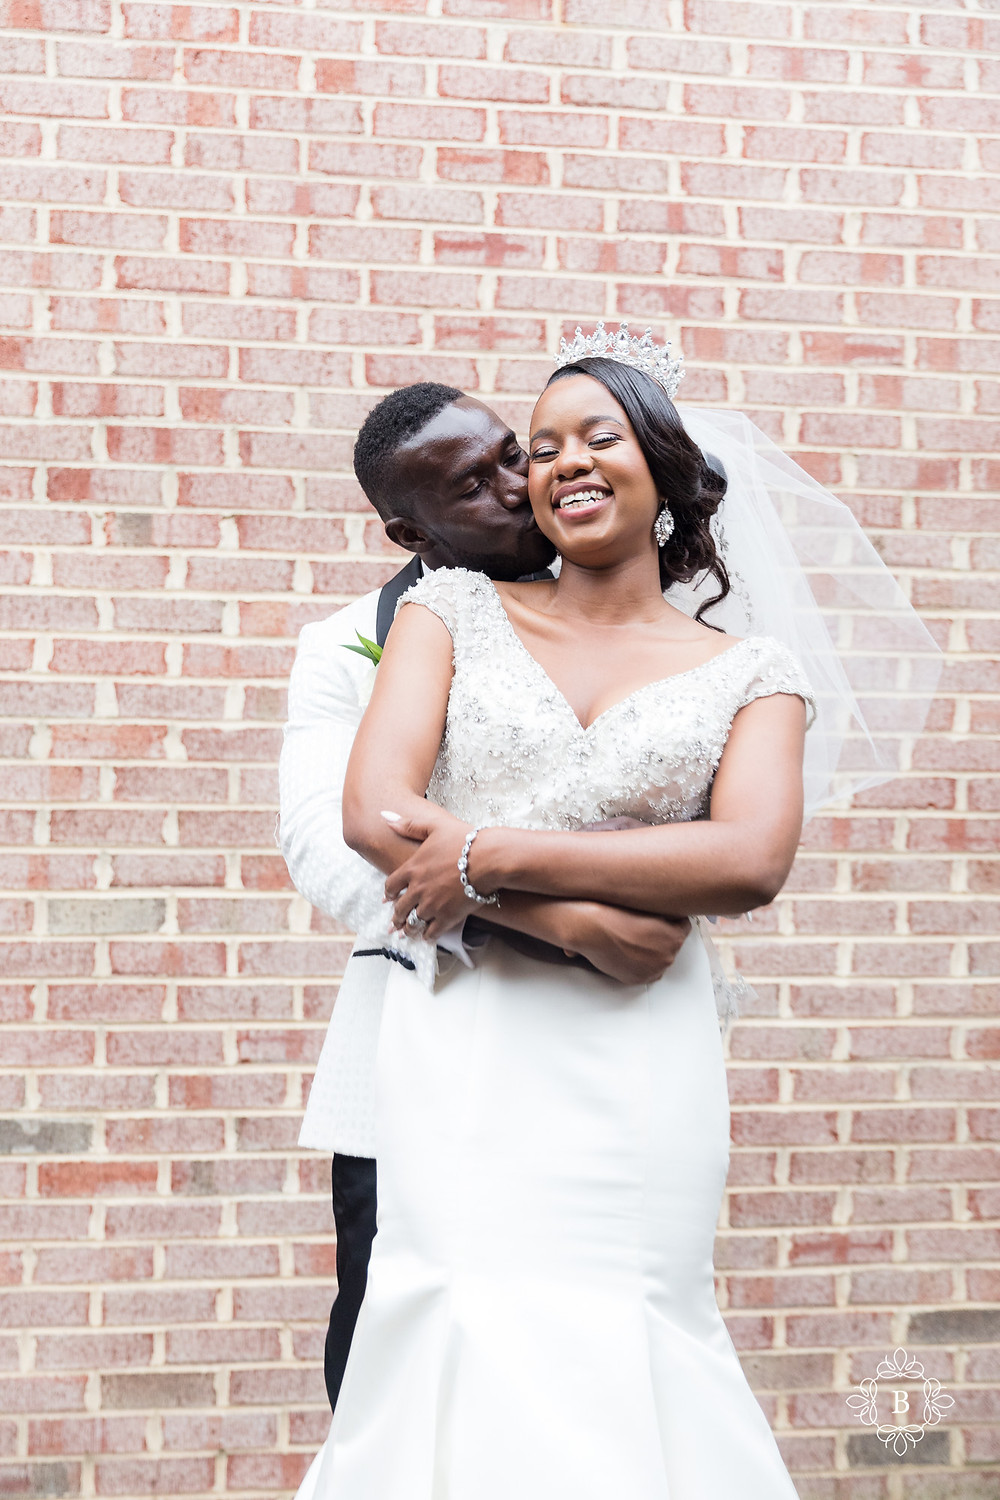 Northern Virginia Culpeper Center and Suites wedding party portraits bride and groom hugging portrait